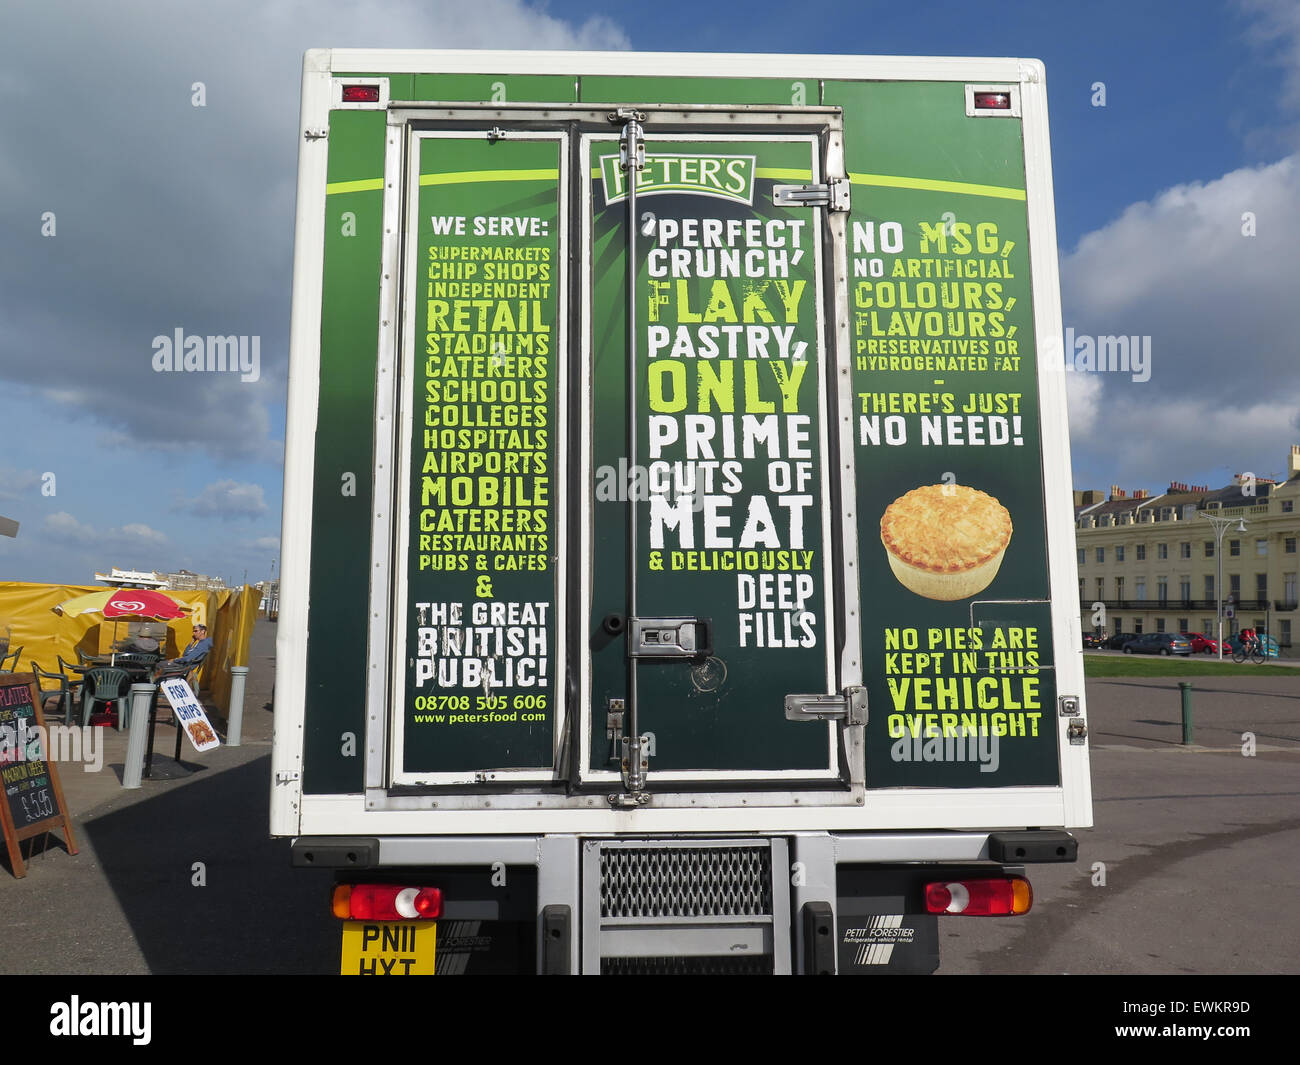 The back of a 'Peters Pies' delivery lorry with a warning to thieves: 'No pies are kept in the vehicle - Stock Image